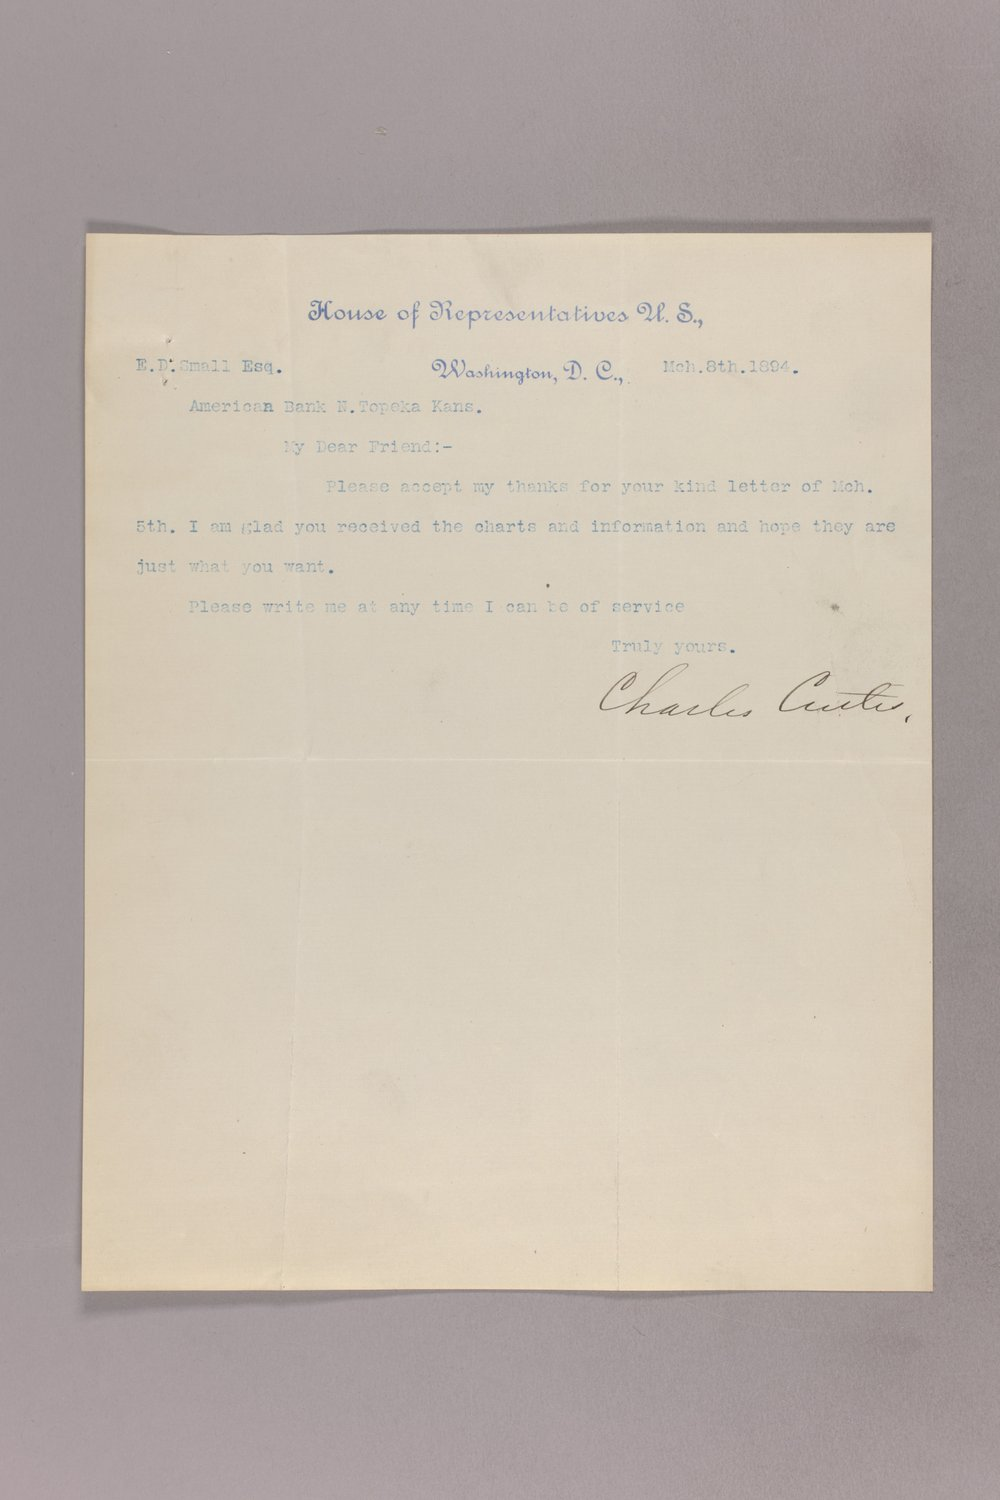 Charles Curits correspondence, 1894 - 2 March 08, 1894